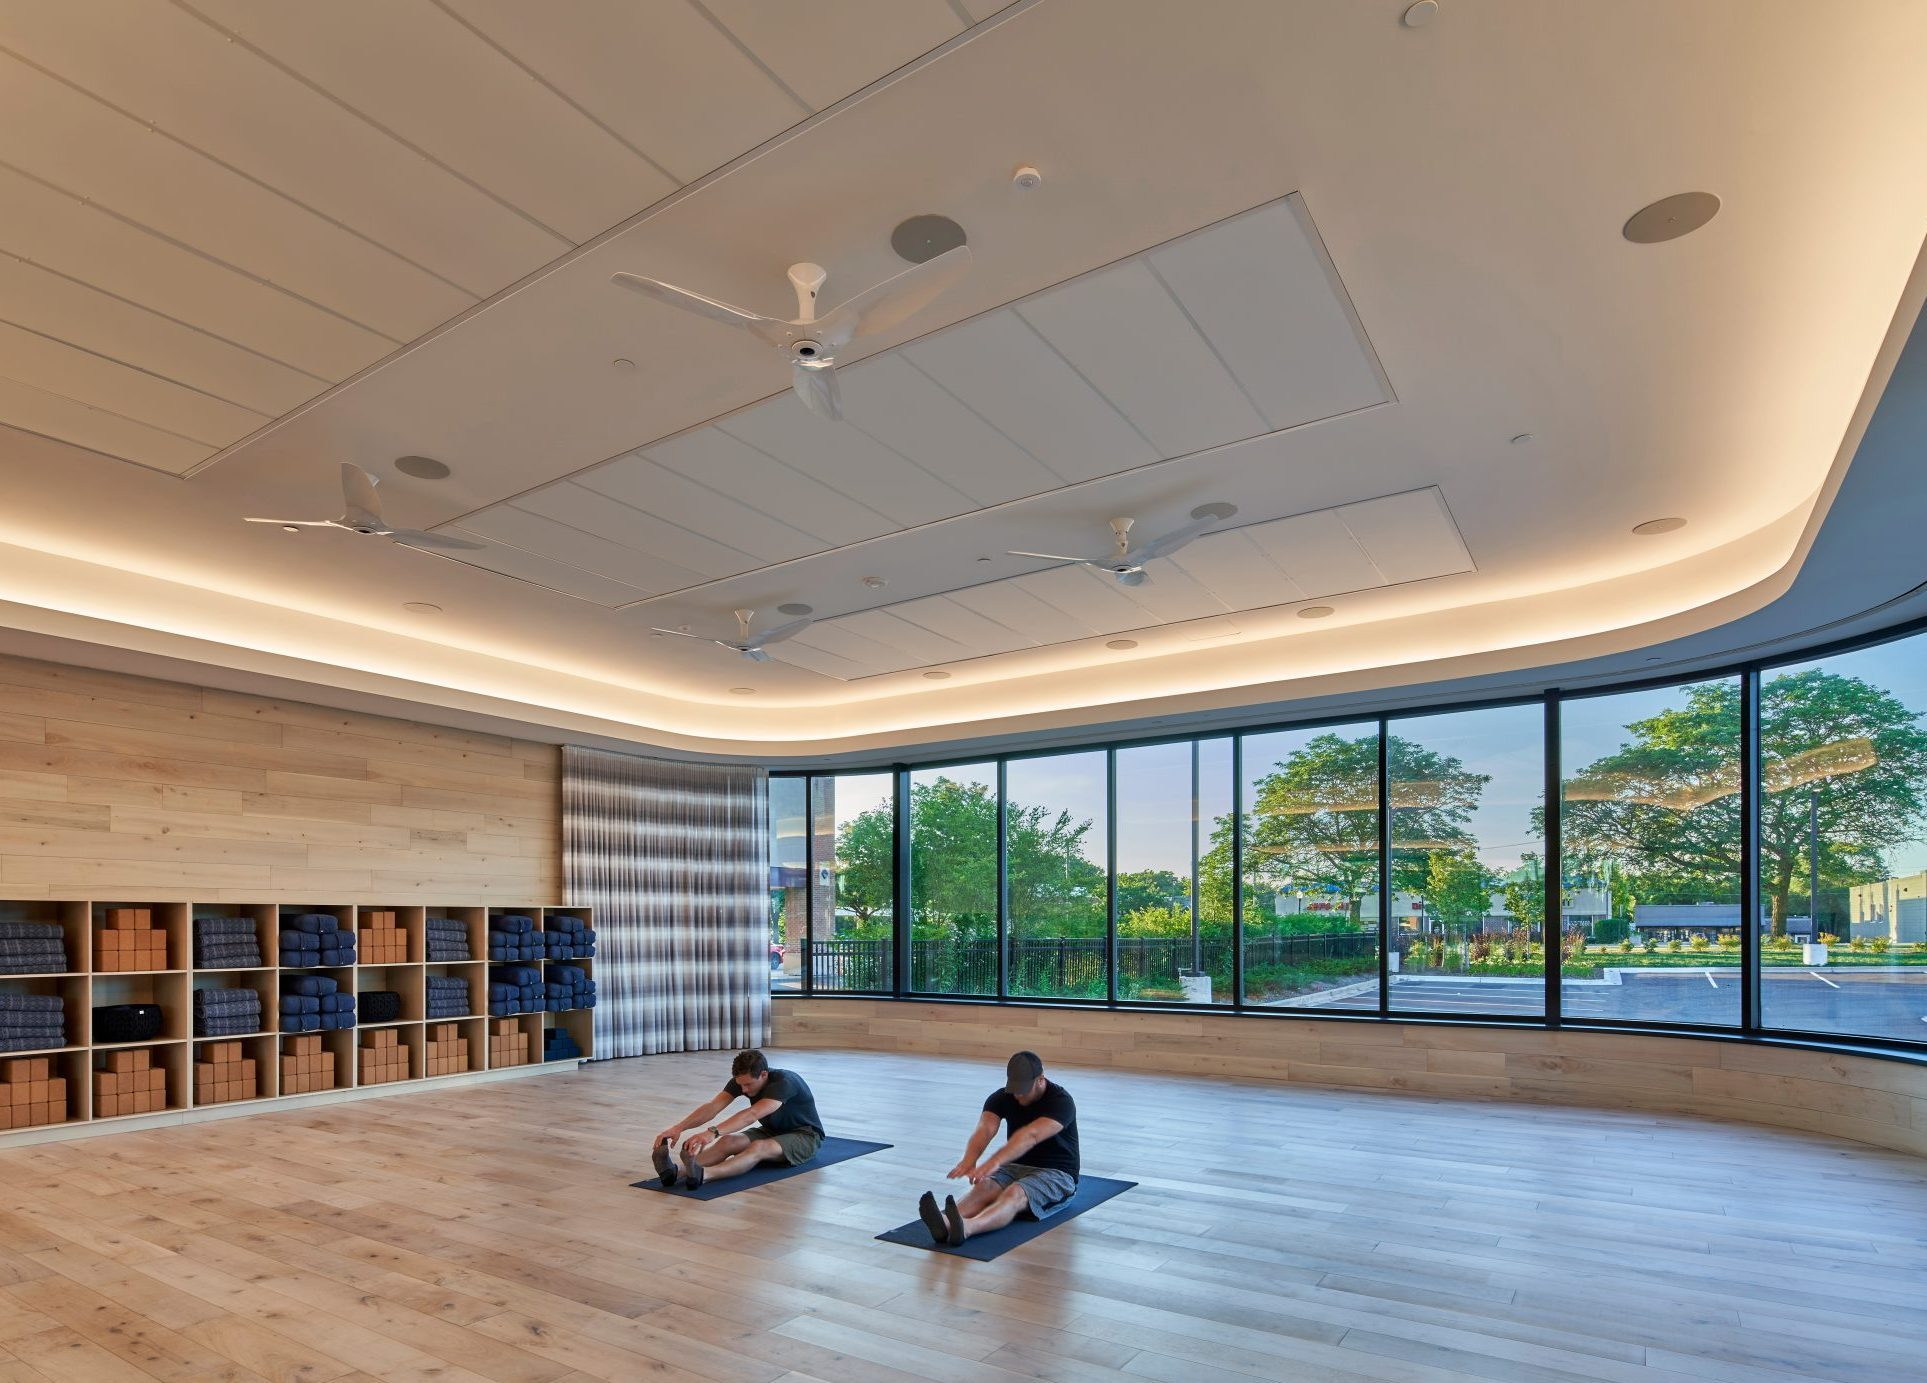 View of yoga studio at Equinox Fitness Club Bloomfield Hills Project in Michigan Architecture and Interior Design